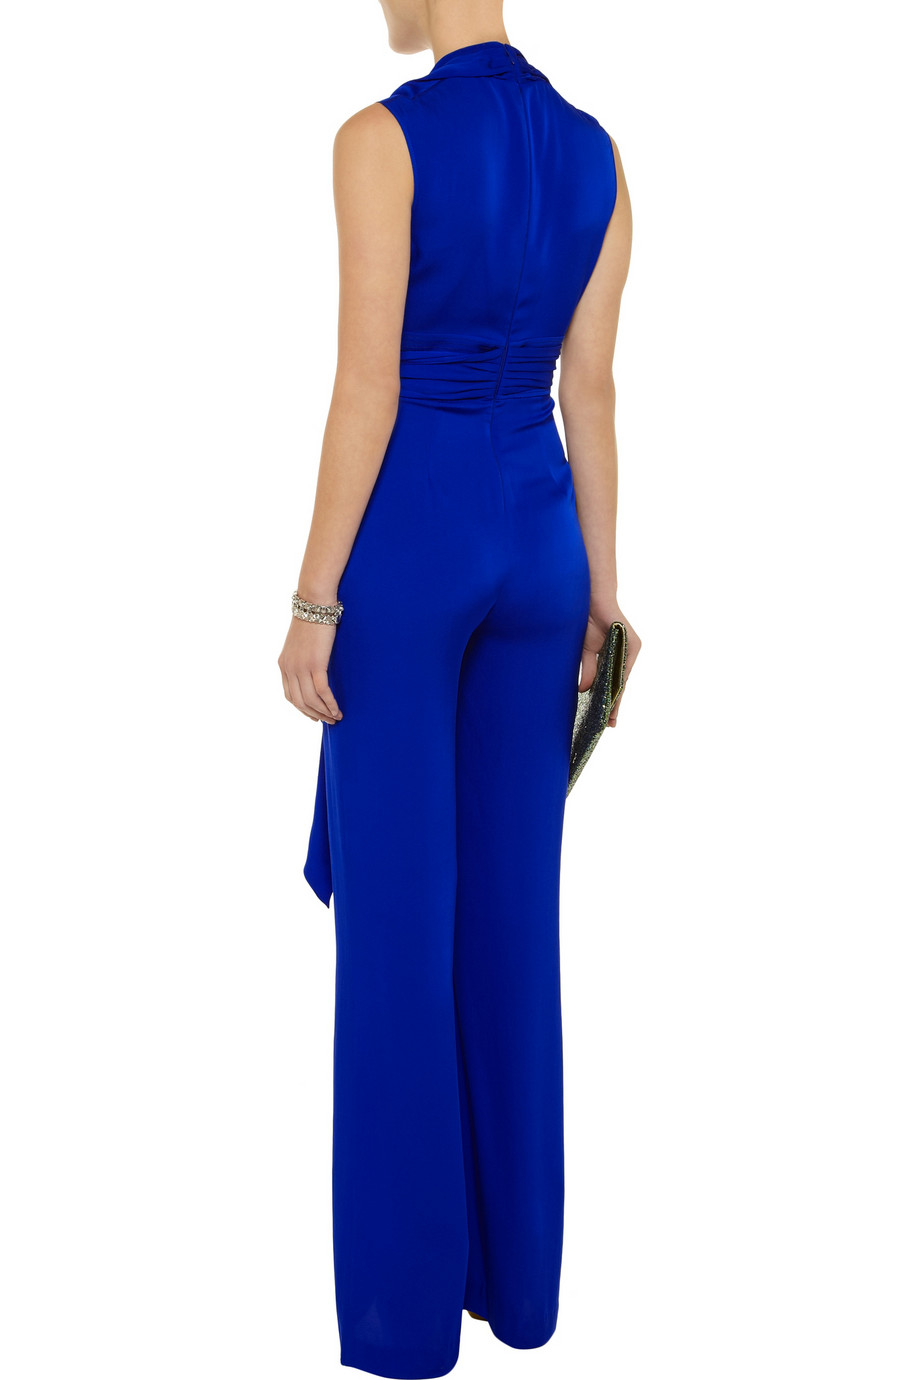 c144f21775a0 Lyst - Catherine Malandrino Belted Stretchsilk Jumpsuit in Blue